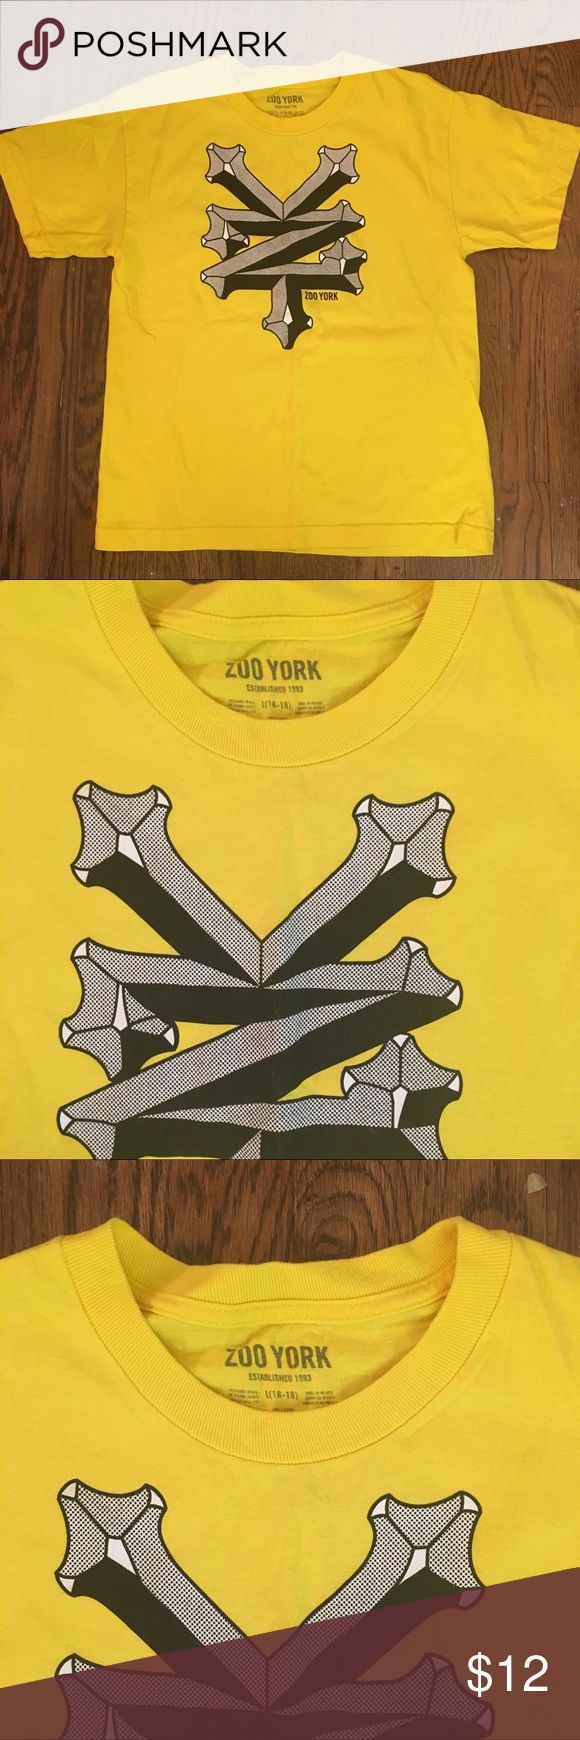 Zoo York  T-Shirt  Youth Size  L(16-18) Zoo York Graphic T-Shirt Youth Size L (13-16) Zoo York Other